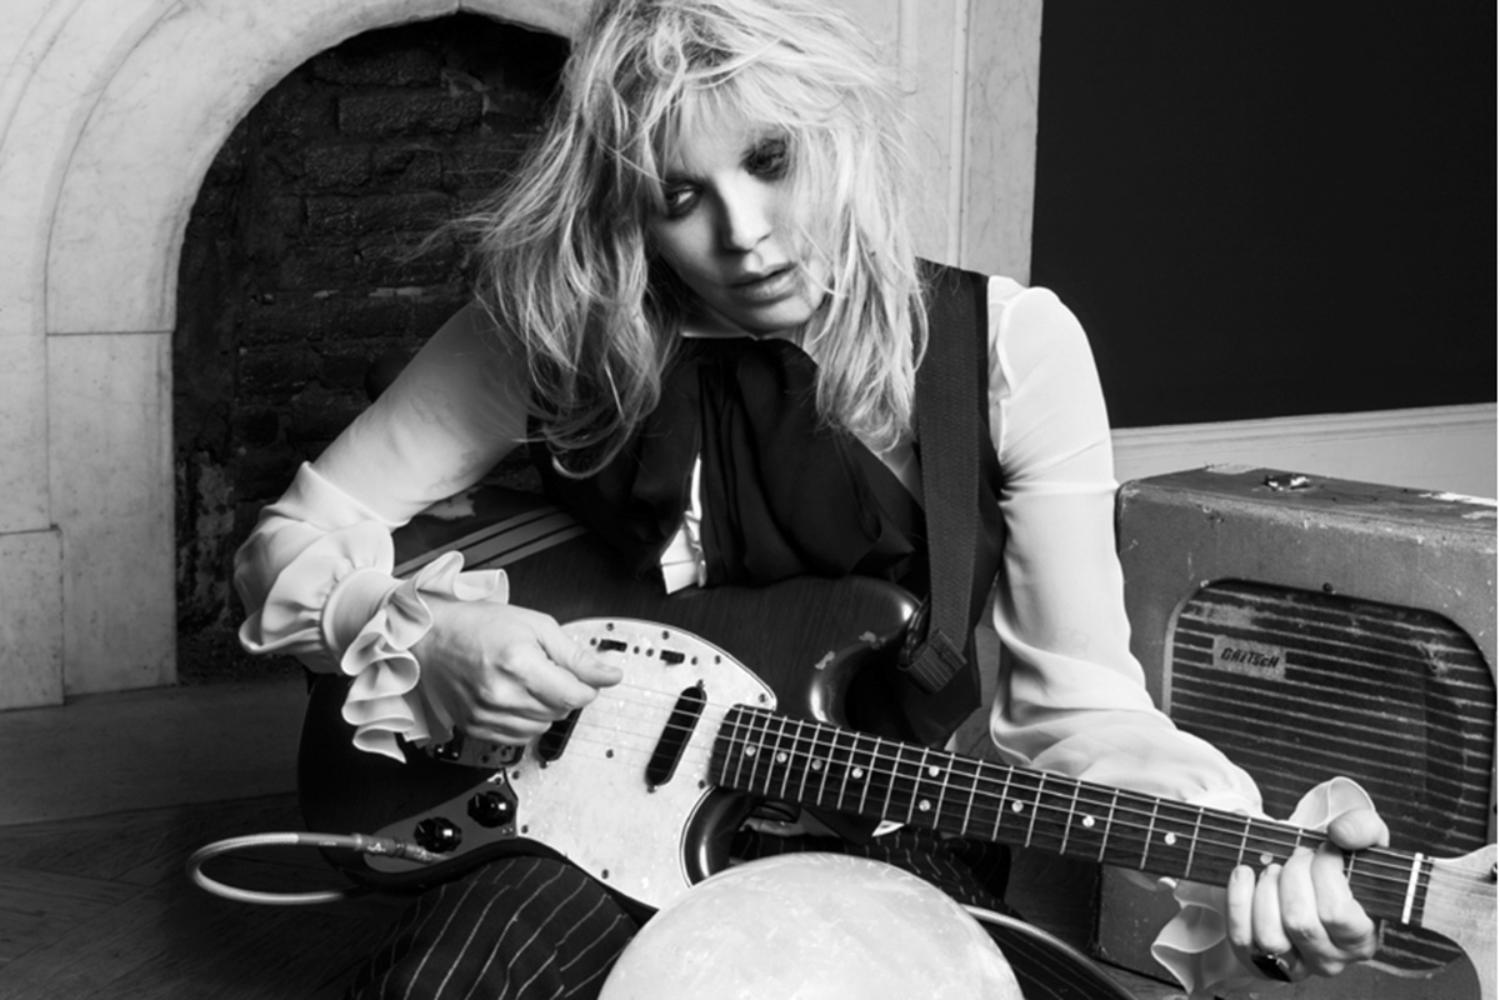 Courtney Love posts messages for Kurt Cobain to mark Frances Bean Cobain's birthday